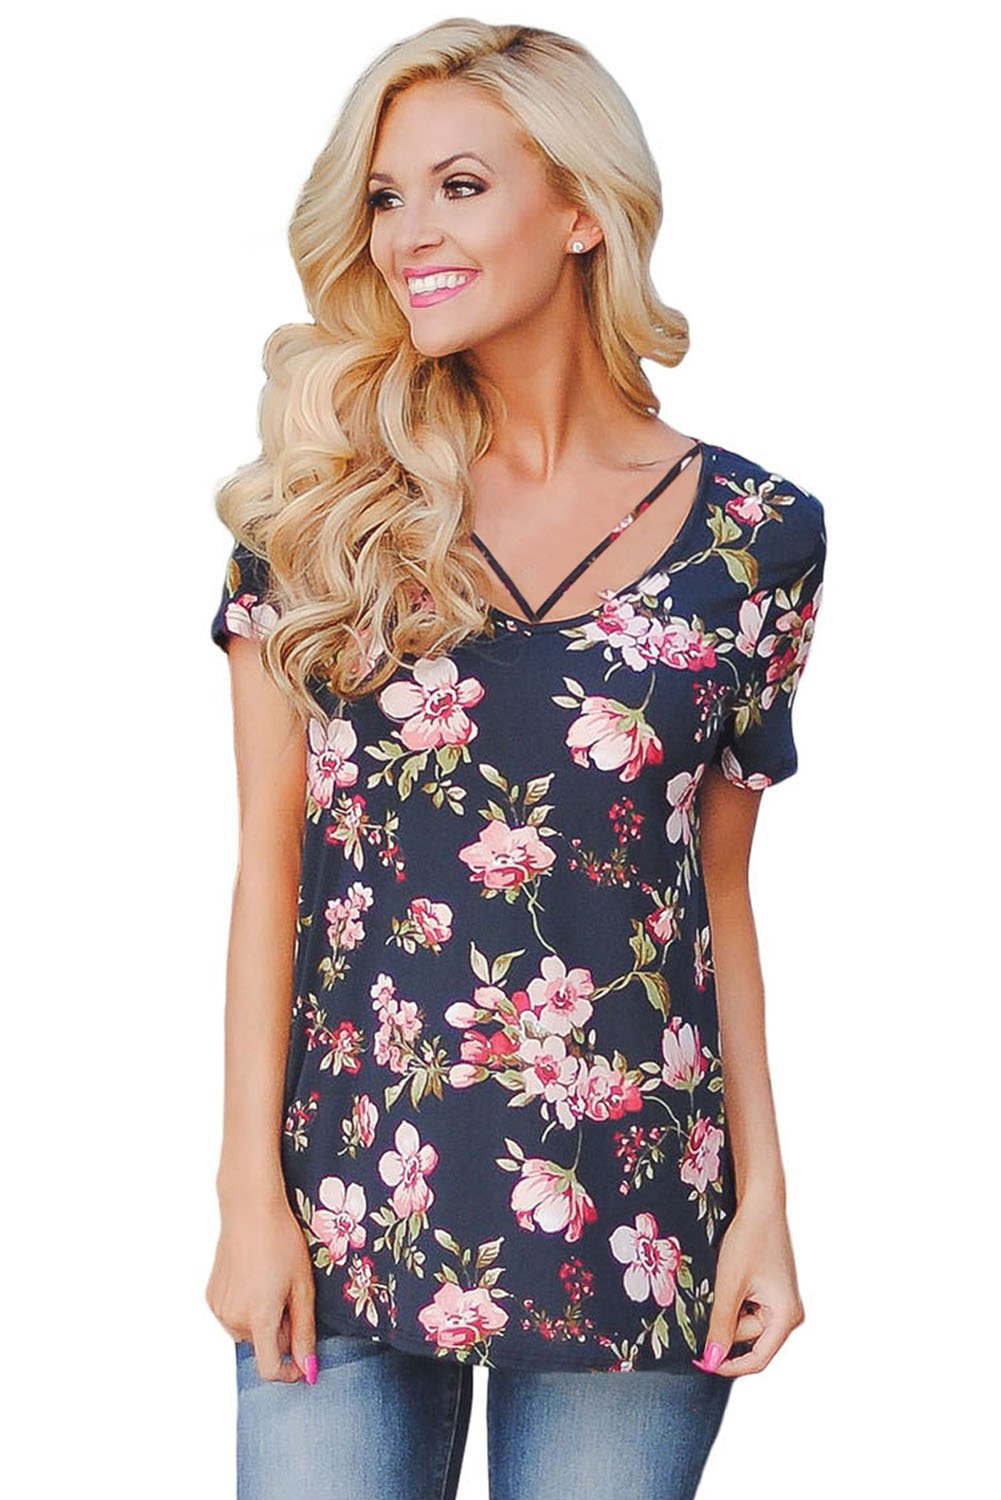 Strappy Neck Detail Navy Floral Short Sleeve T-shirt